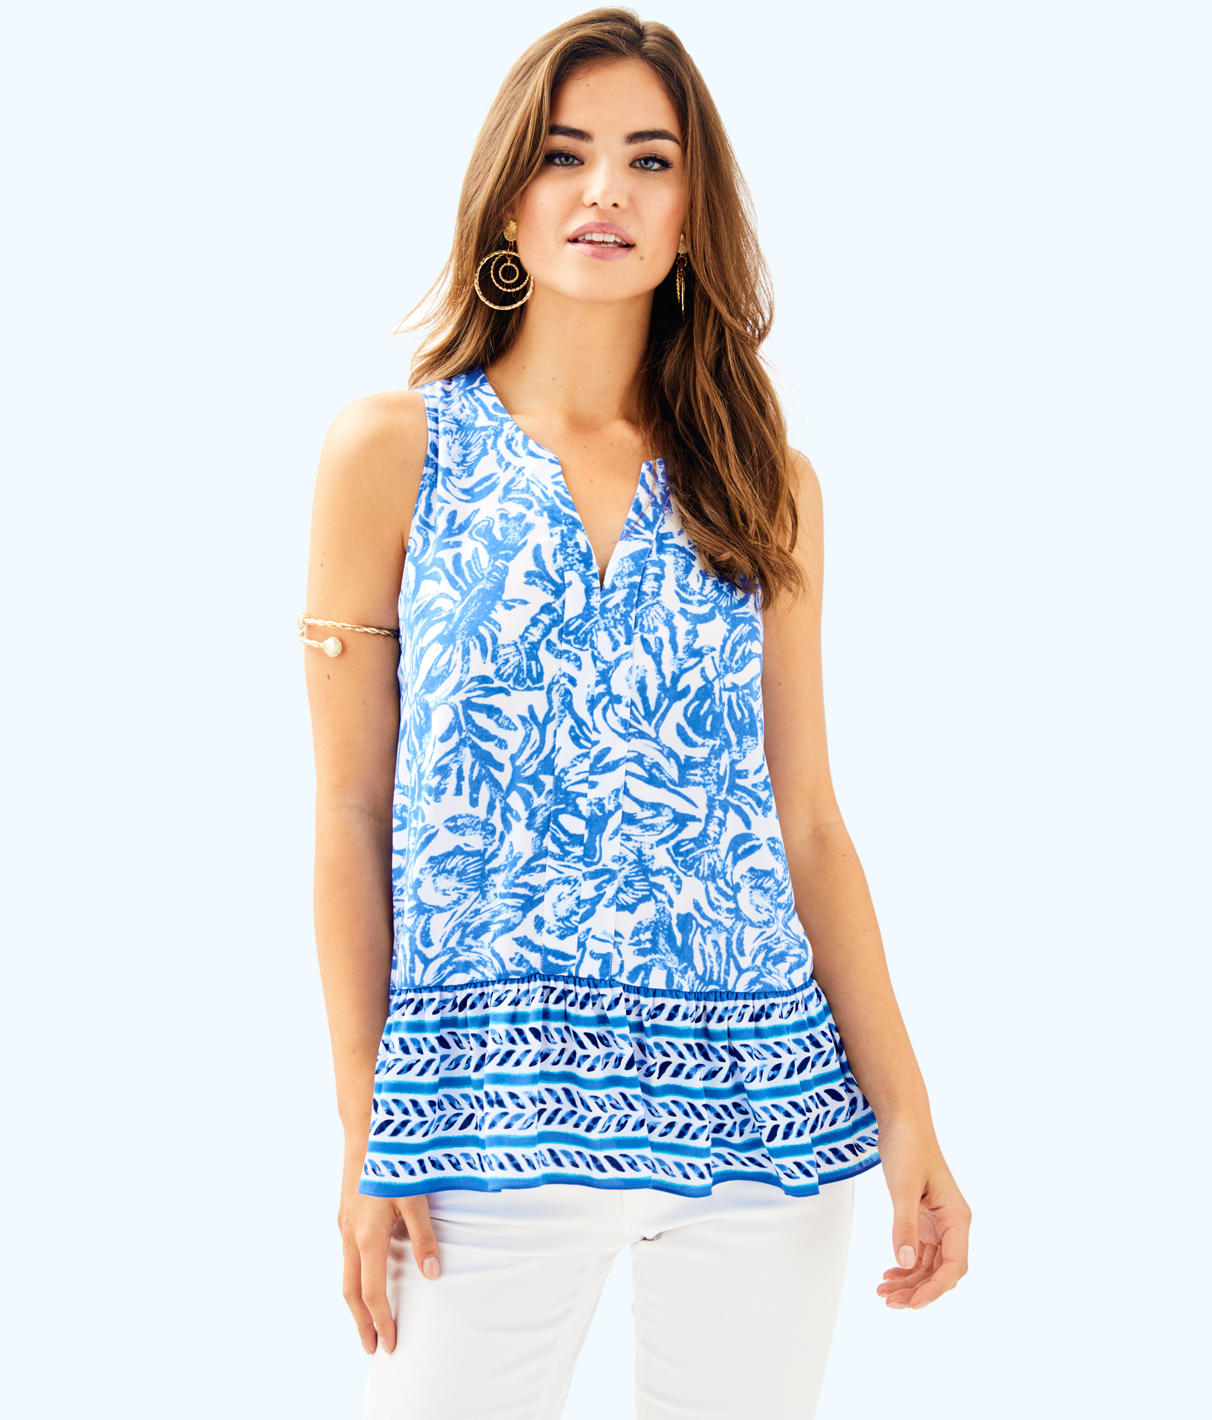 Lilly Pulitzer Lilly Pulitzer Womens Gramercy Top